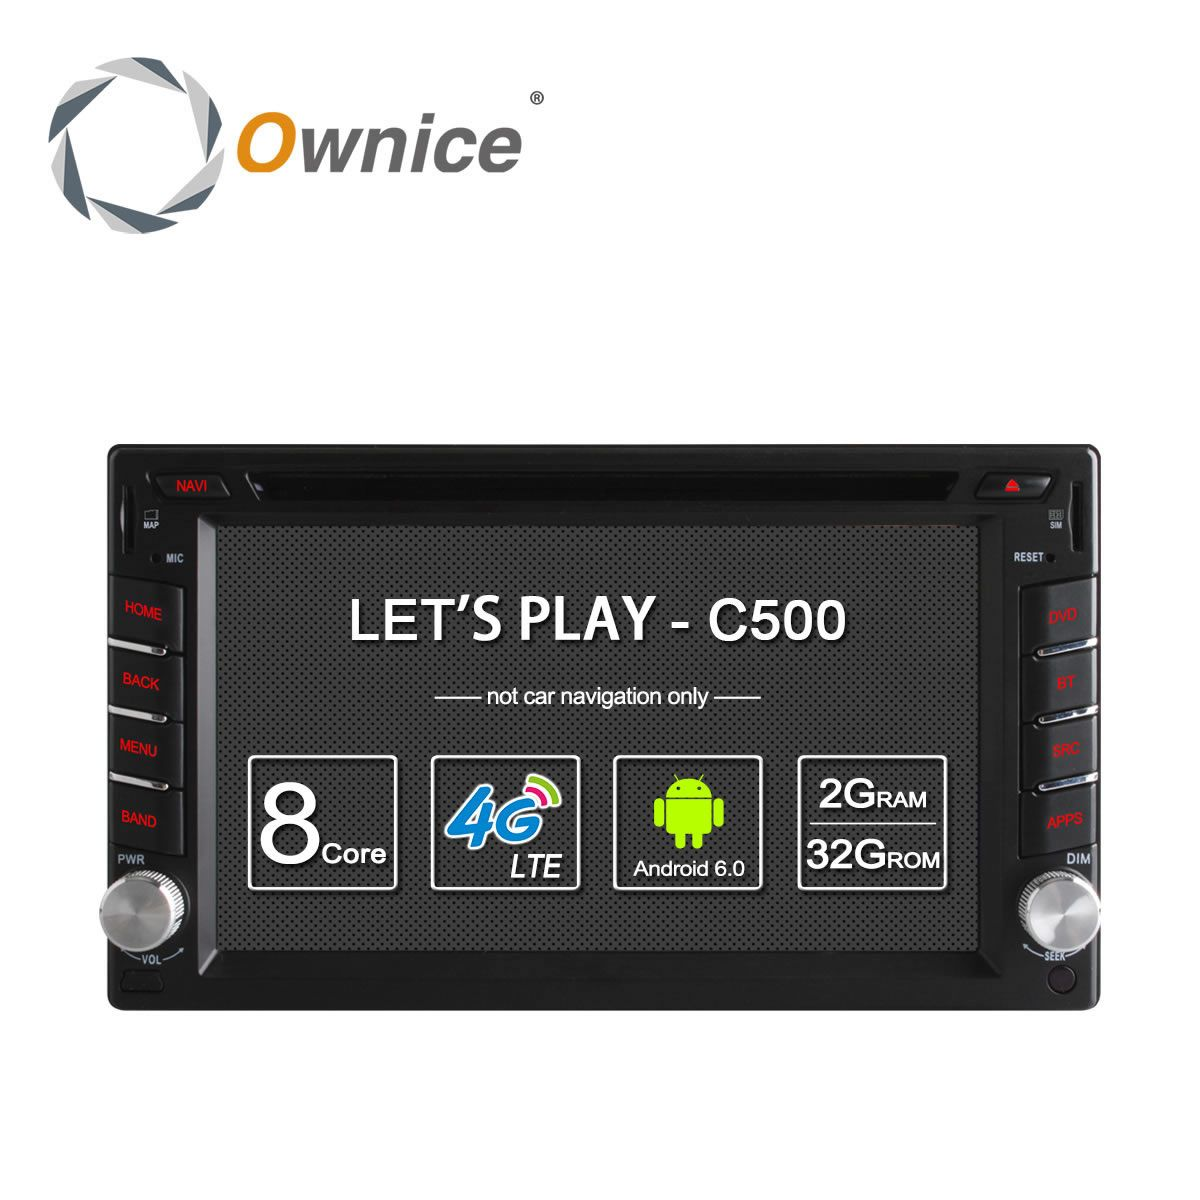 Ownice C500 Universal 2 din Android 6.0 Octa 8 Core Car DVD player GPS Wifi BT Radio BT 2GB RAM 32GB ROM 4G SIM LTE Network